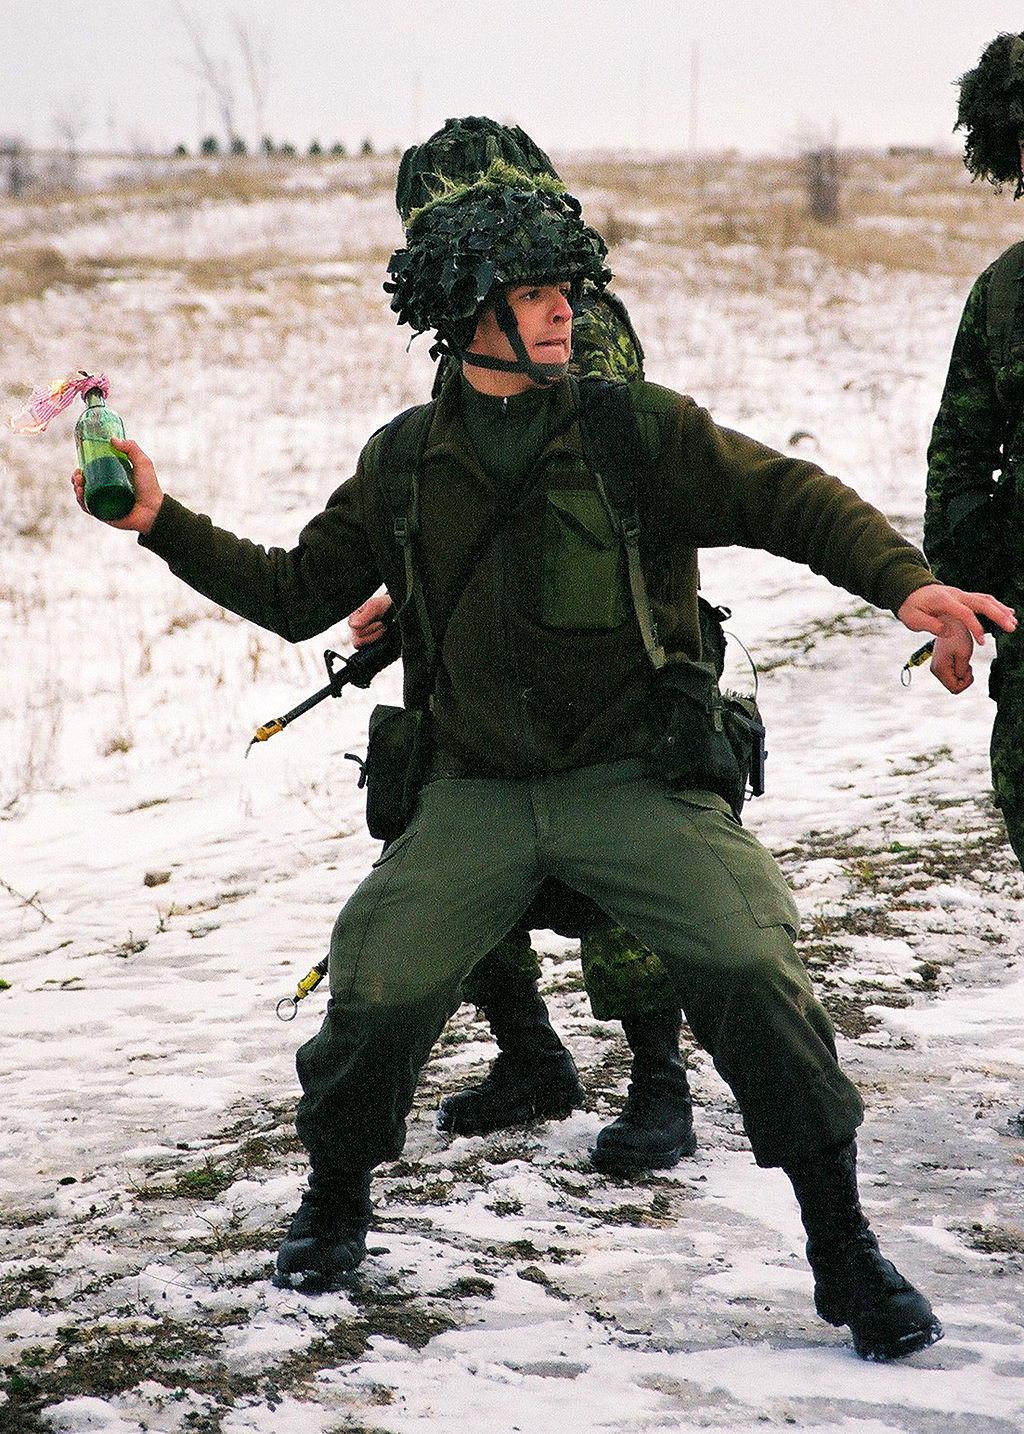 Canadian soldier throwing a Molotov cocktail